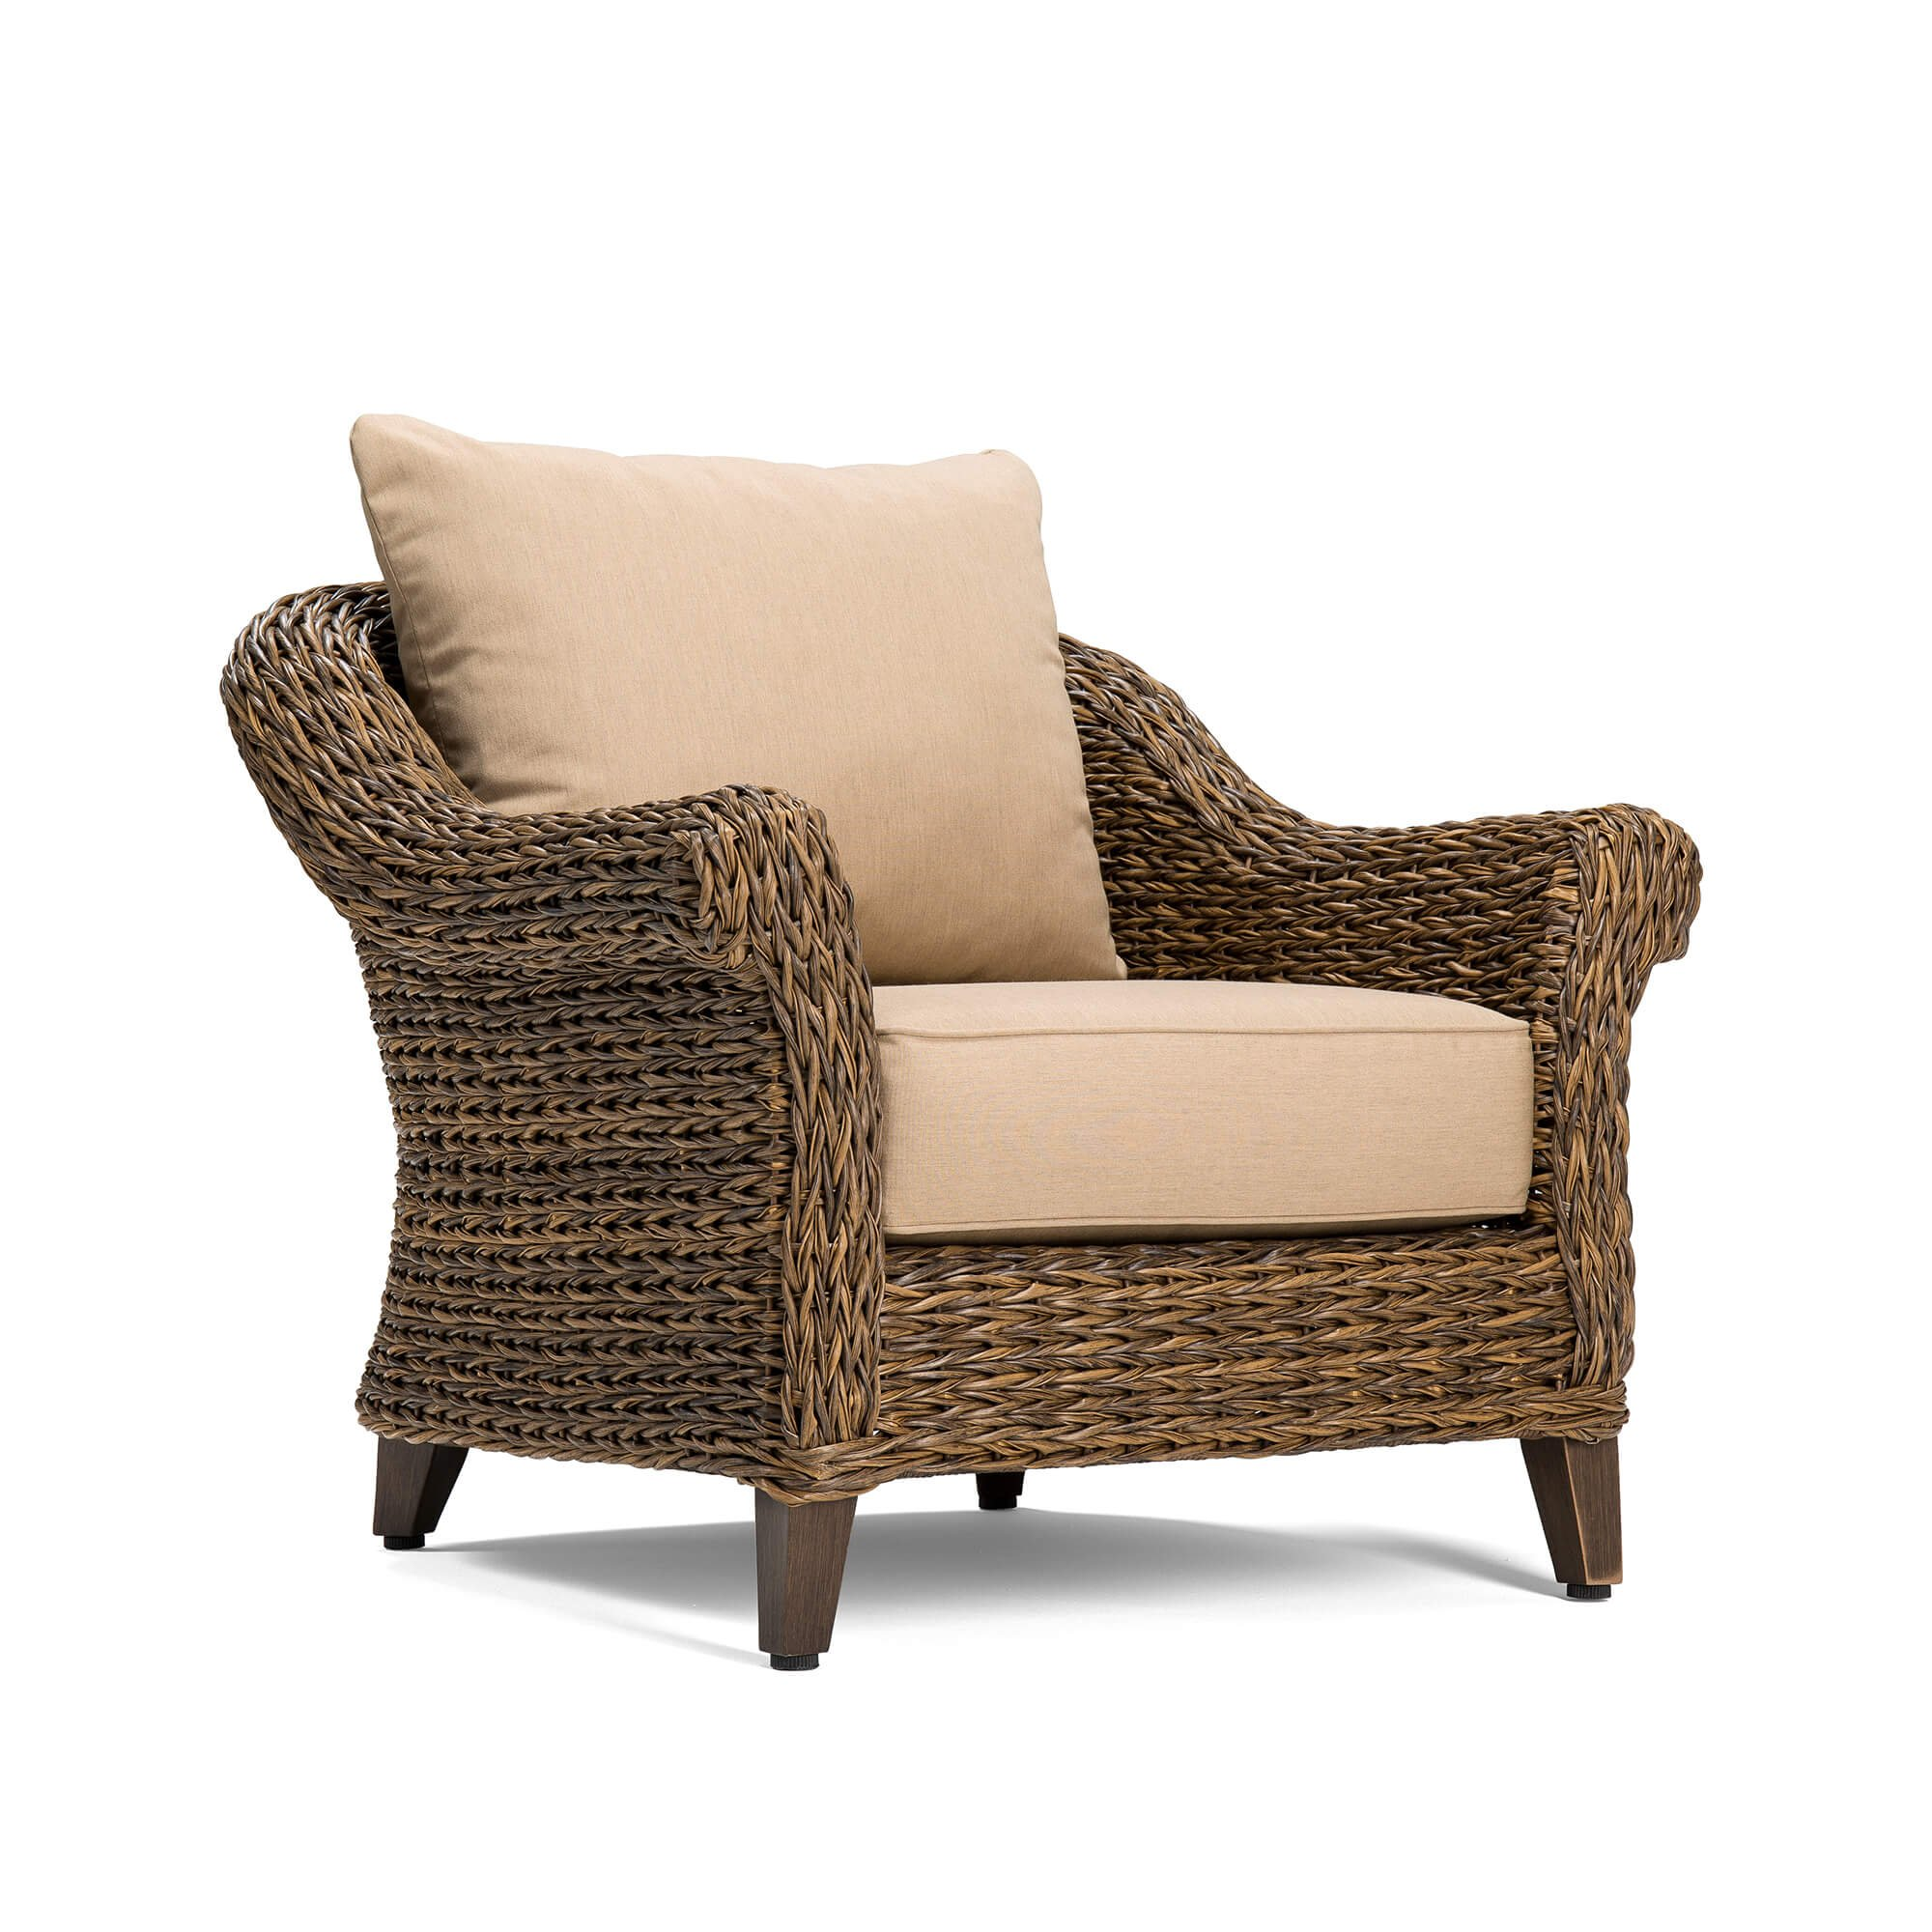 Blue Oak Outdoor Bahamas Patio Furniture Stationary Lounge Chair with Sunbrella Canvas Heather Beige Cushions